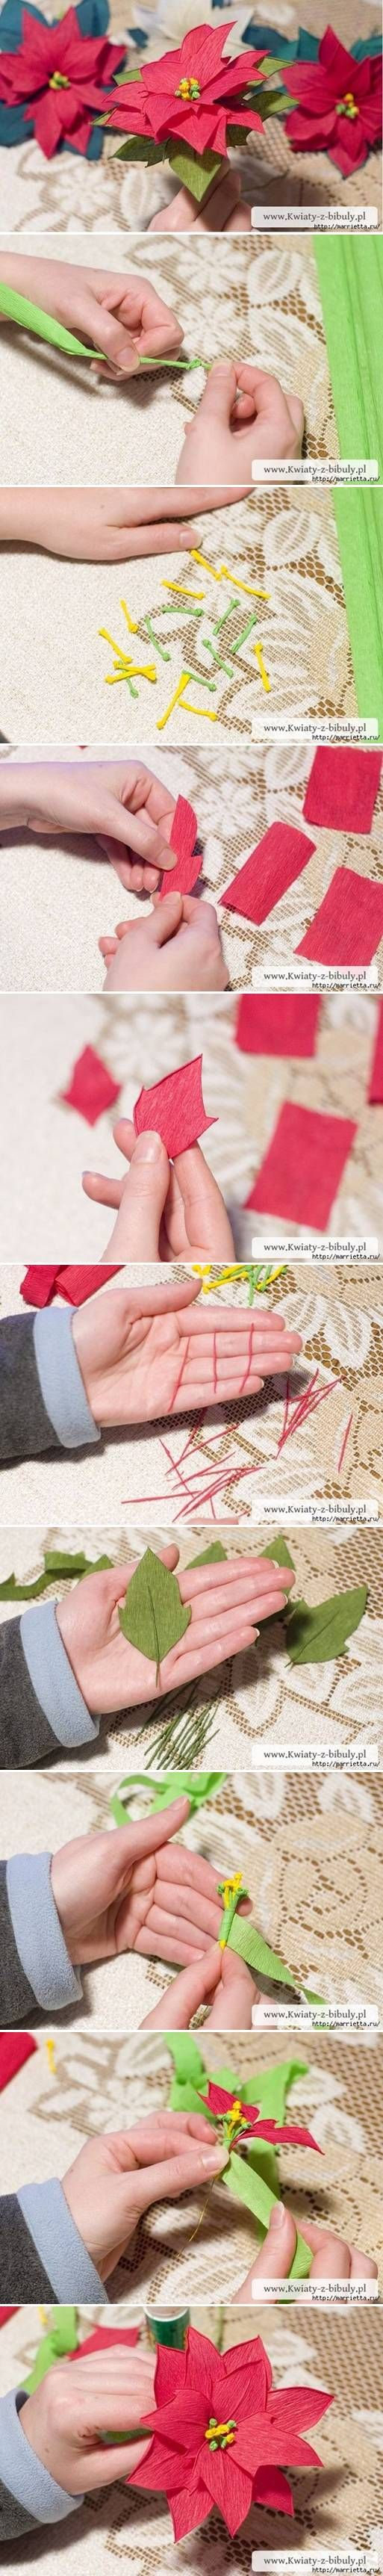 Poinsettia are beautiful flowers and they can be really fun to make. Once...